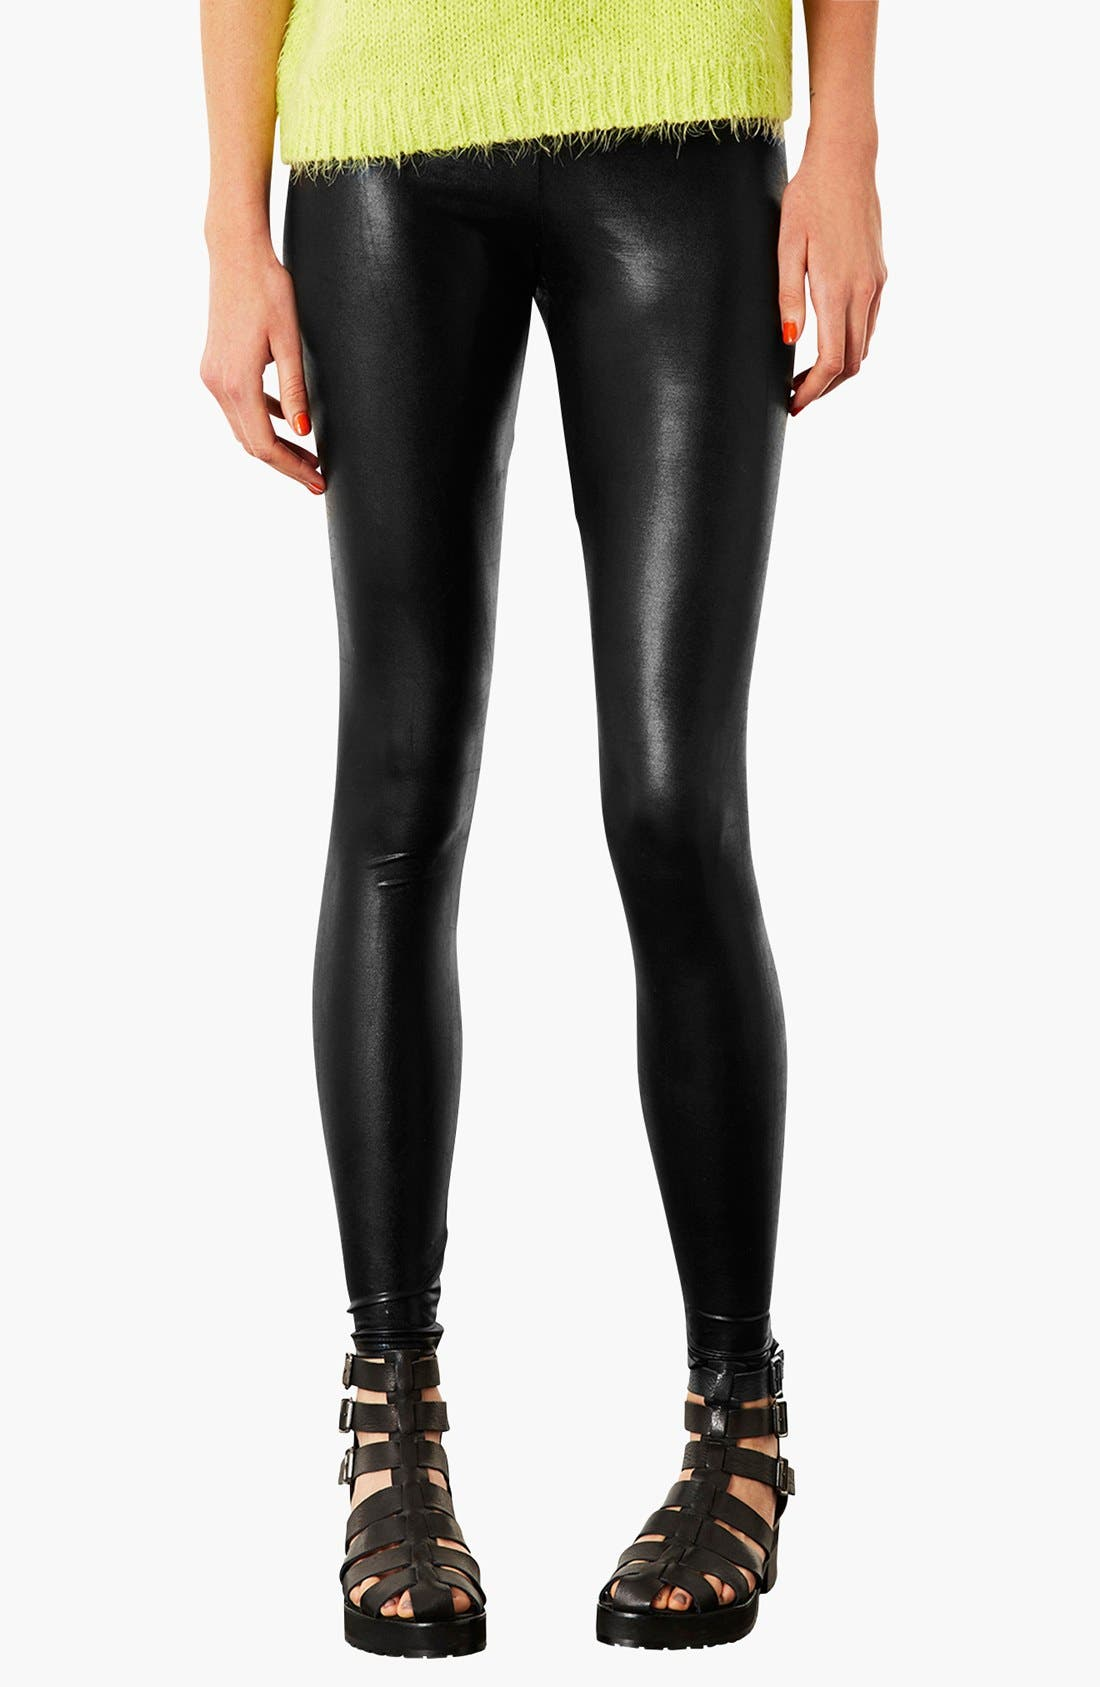 Alternate Image 1 Selected - Topshop High Shine Leggings